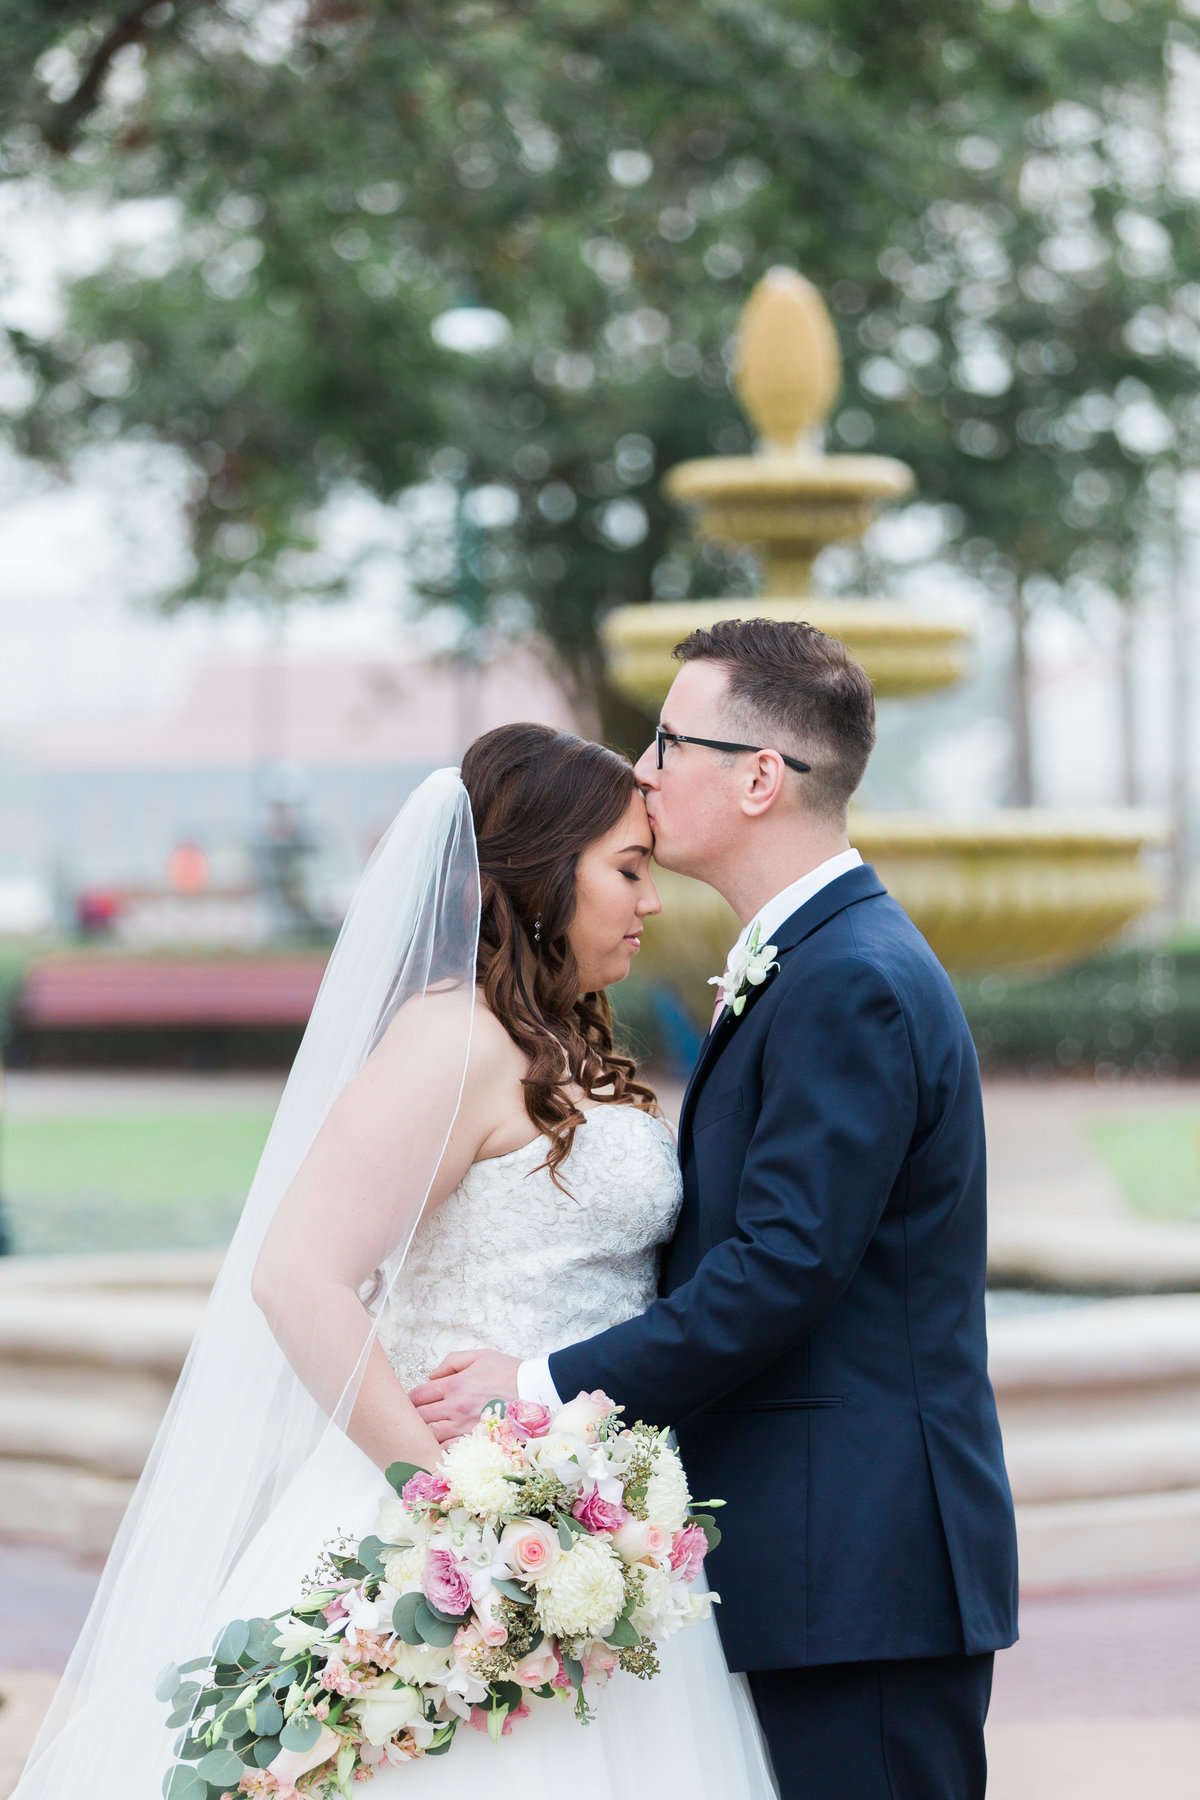 Jess Collins Photography Our Disney Wedding 2017 (233 of 668)